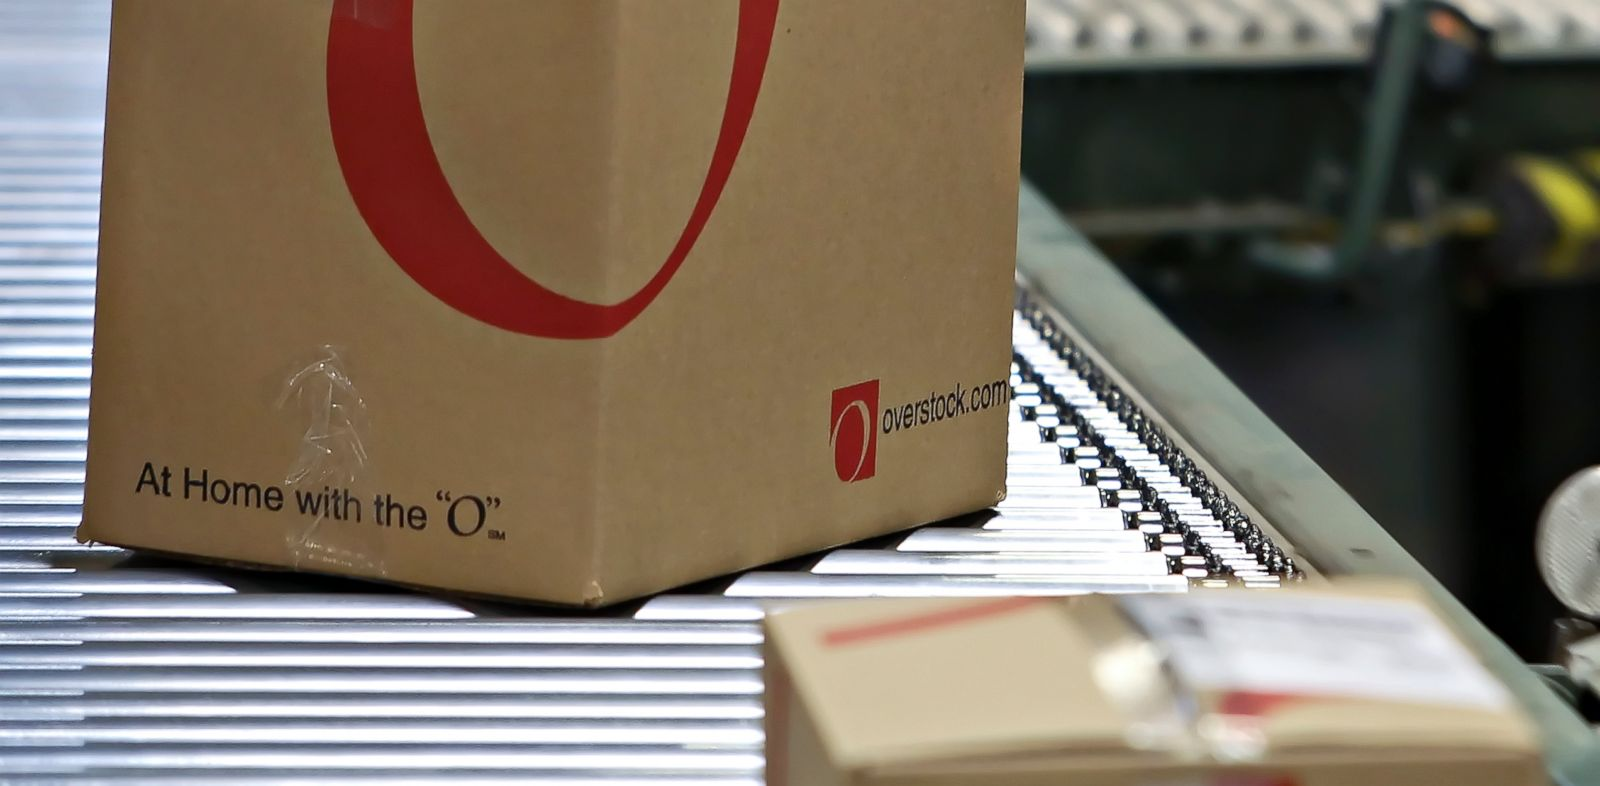 PHOTO: Boxes move down a conveyor belt before being shipped from an Overstock.com warehouse in Salt Lake City, Utah, April 29, 2010.